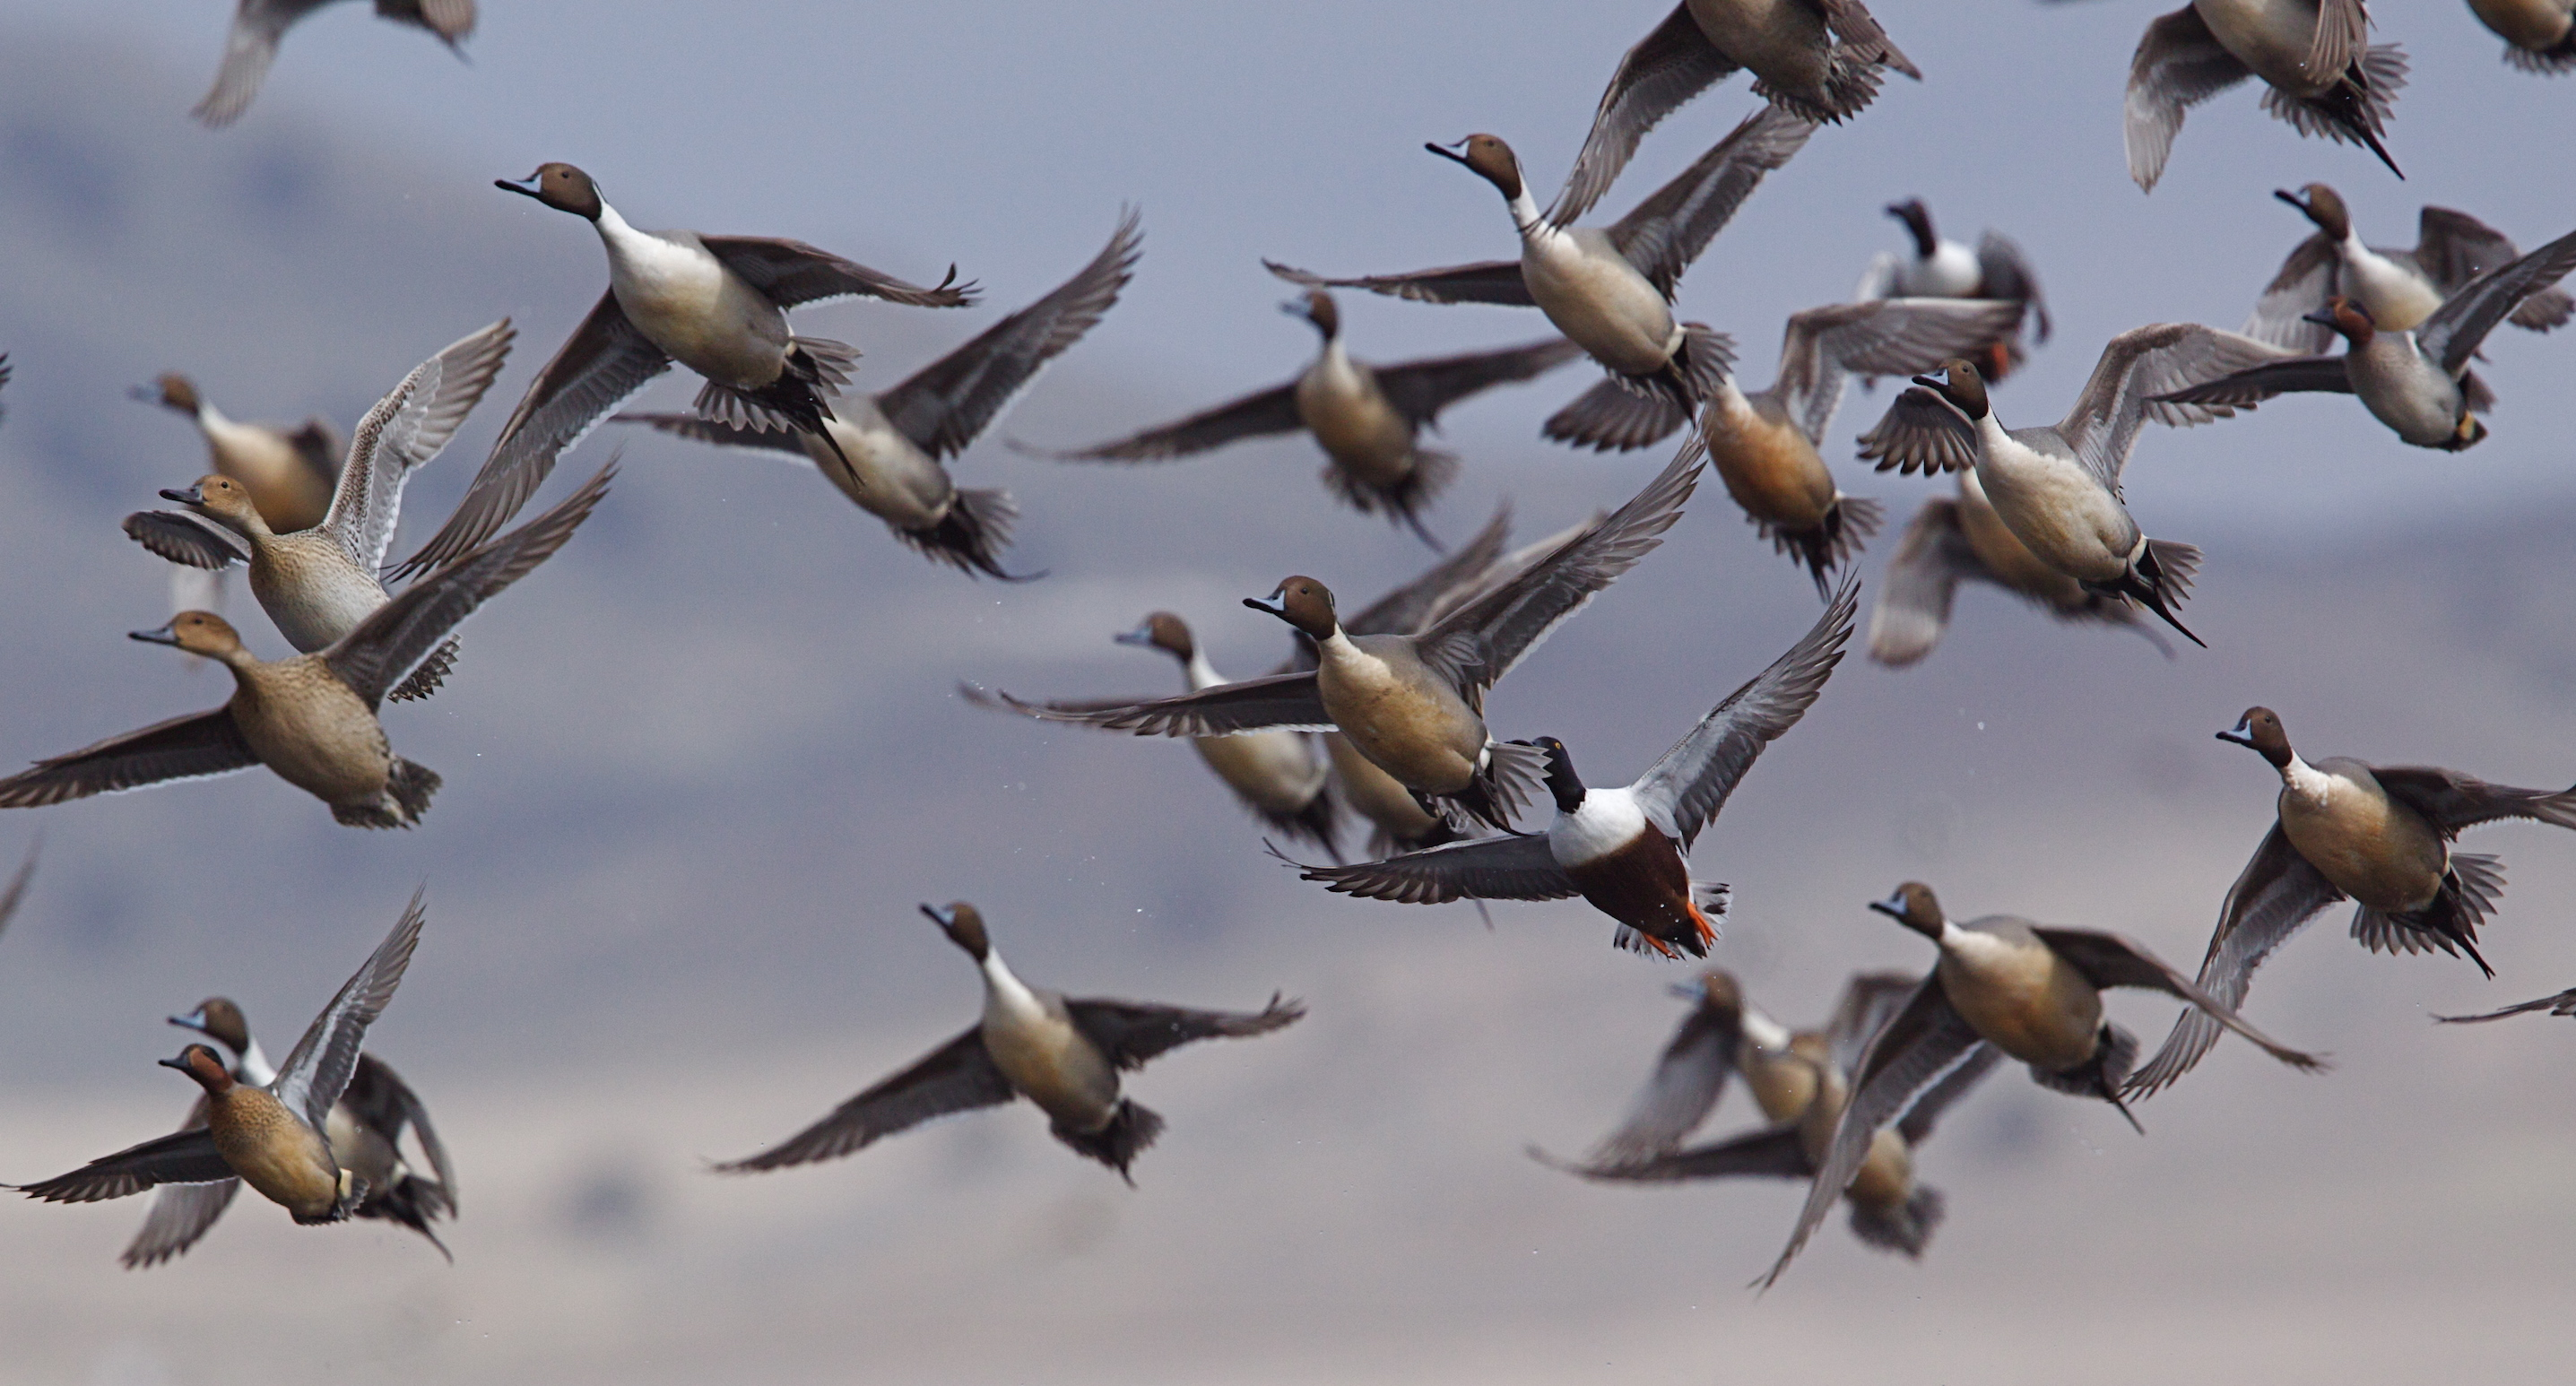 Mixed species foraging flocks are exactly what they sound like: groups of birds of different species who forage for food together.